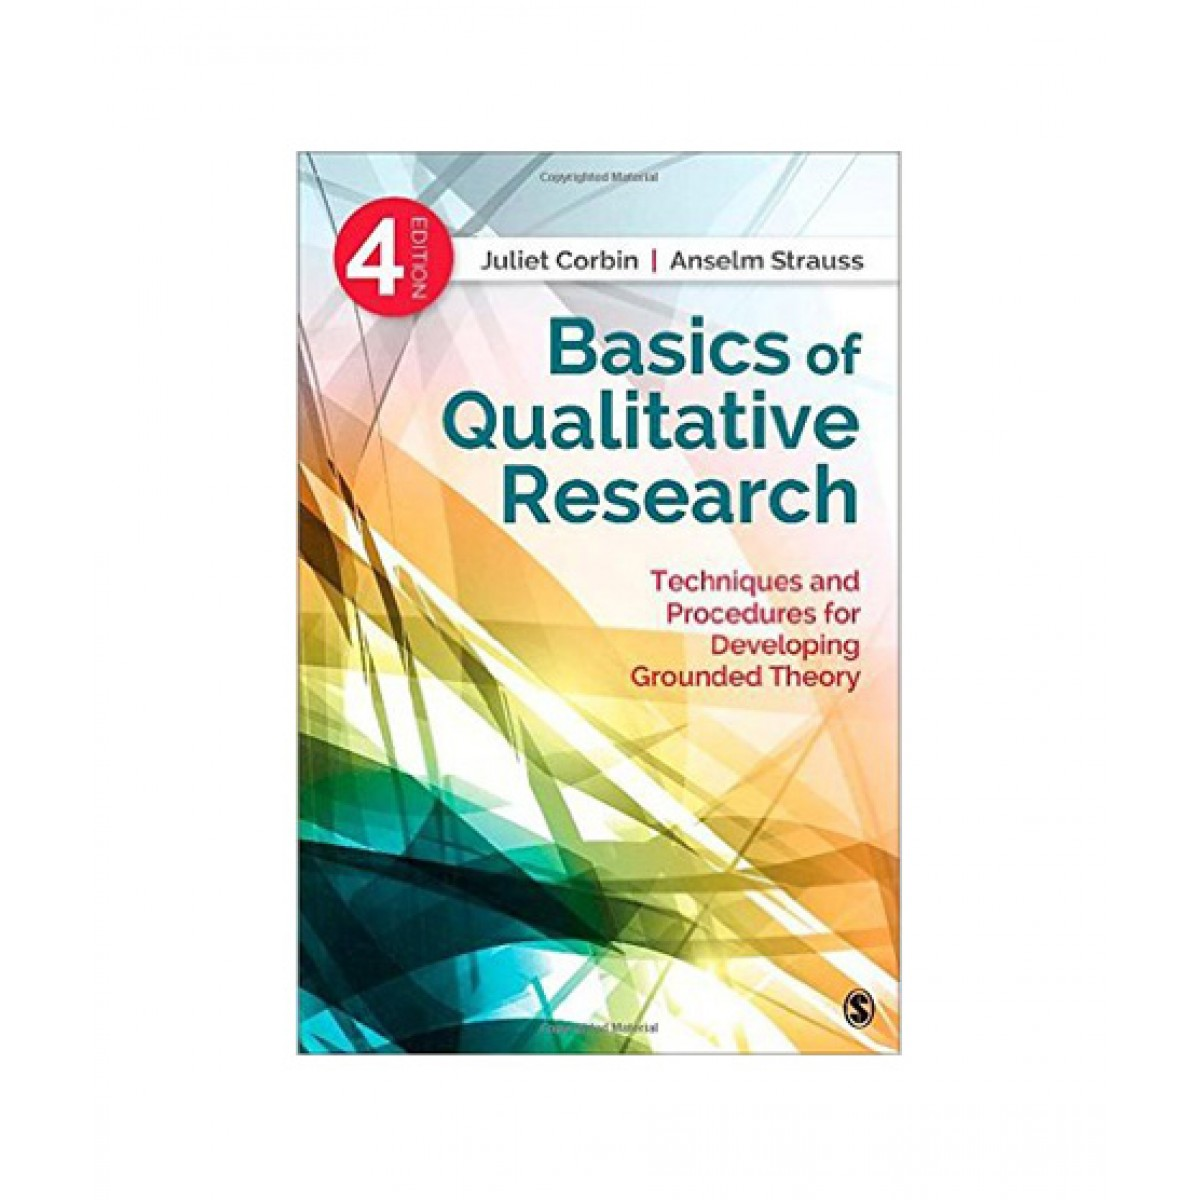 Basics of Qualitative Research Book 4th Edition